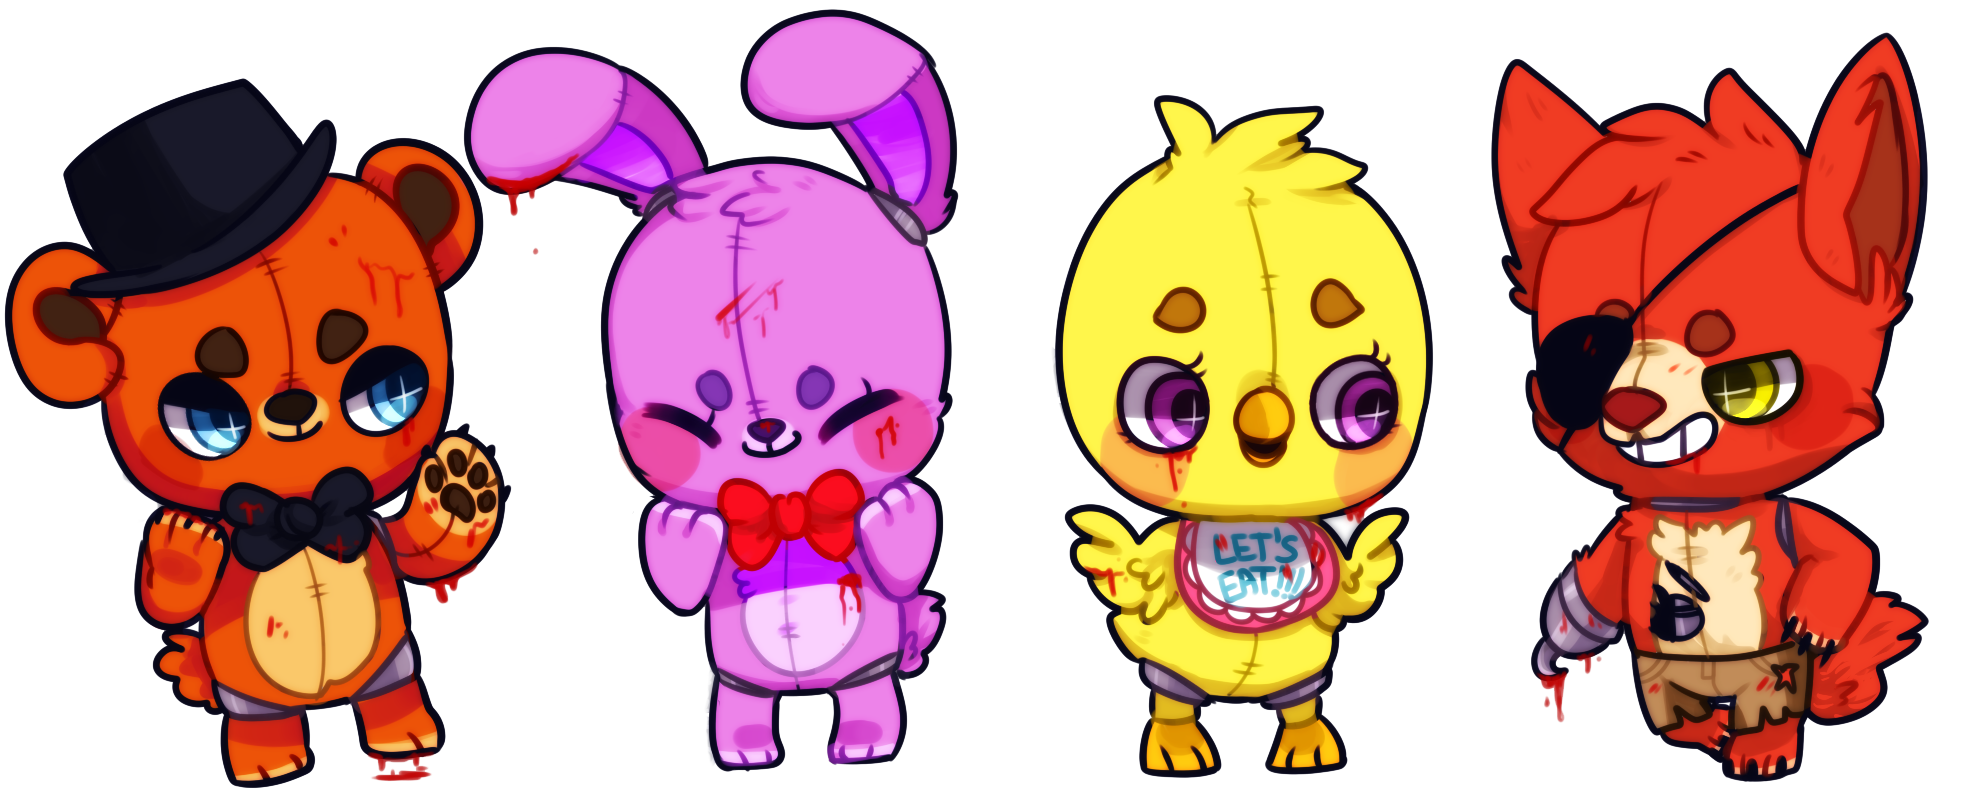 Five nights at freddy 39 s by on - Fnaf cute pictures ...